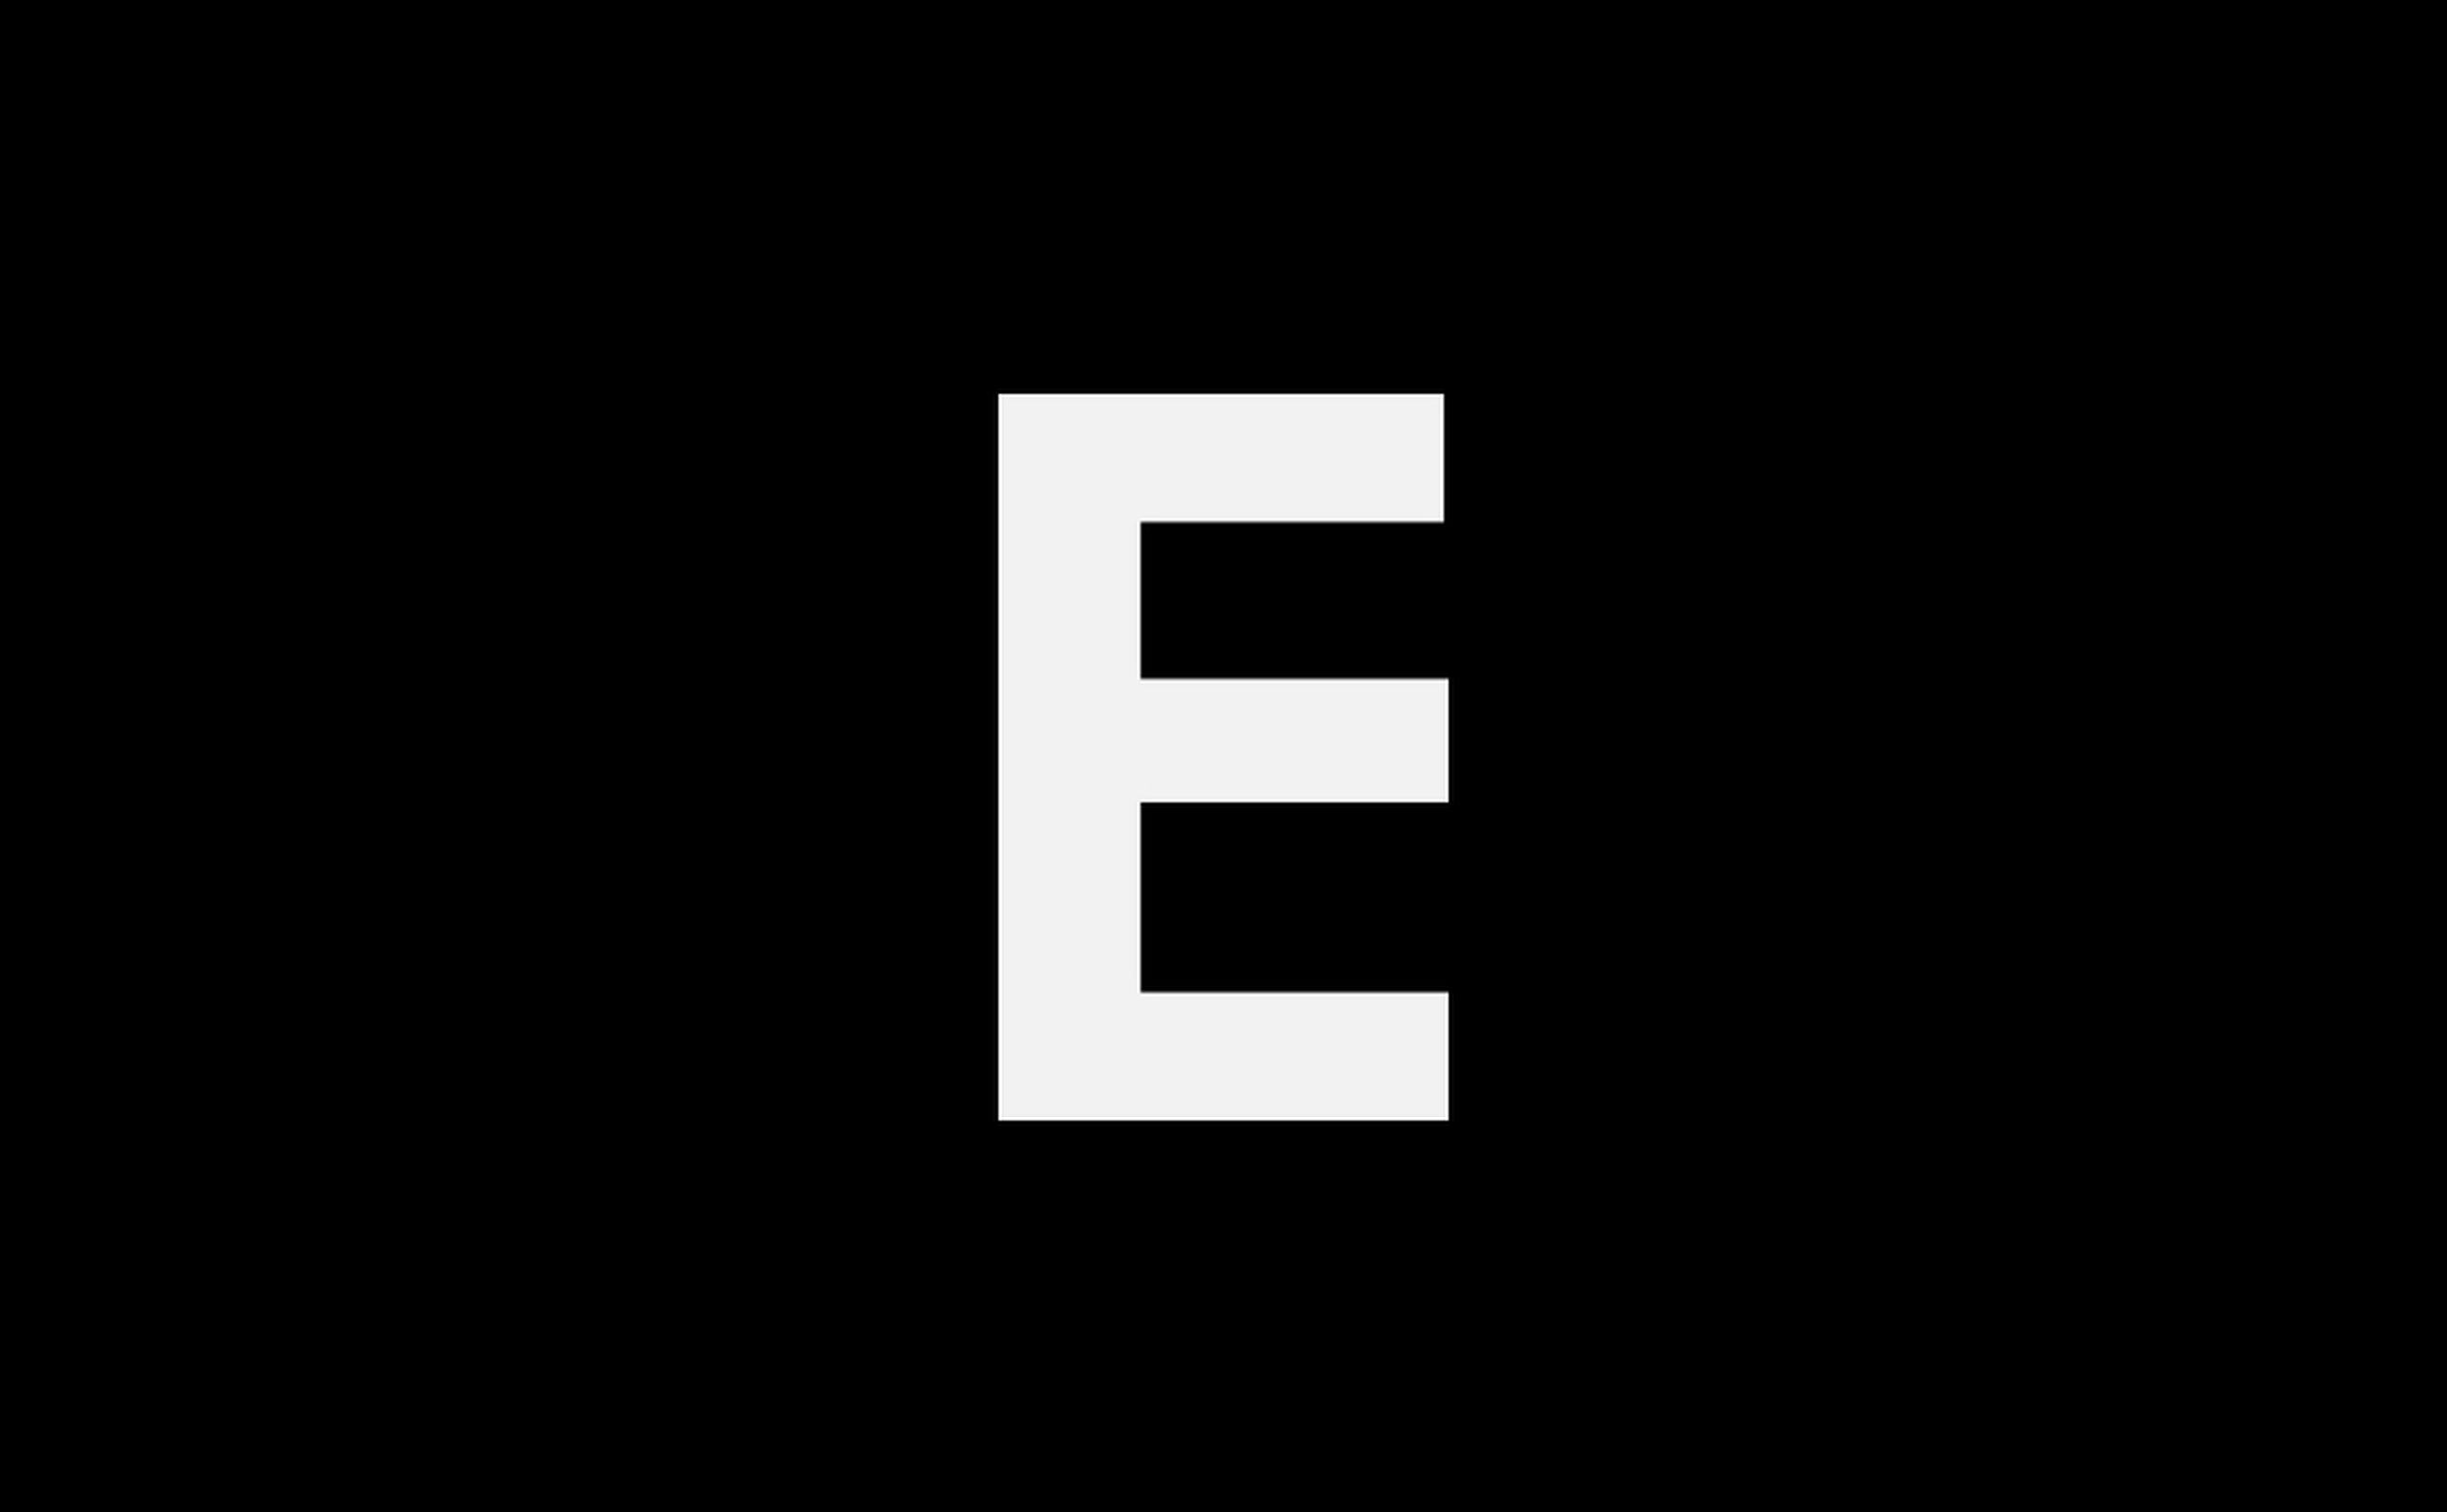 desert, nature, scenics, no people, sand dune, landscape, beauty in nature, arid climate, cloud - sky, sunset, outdoors, heat - temperature, sky, day